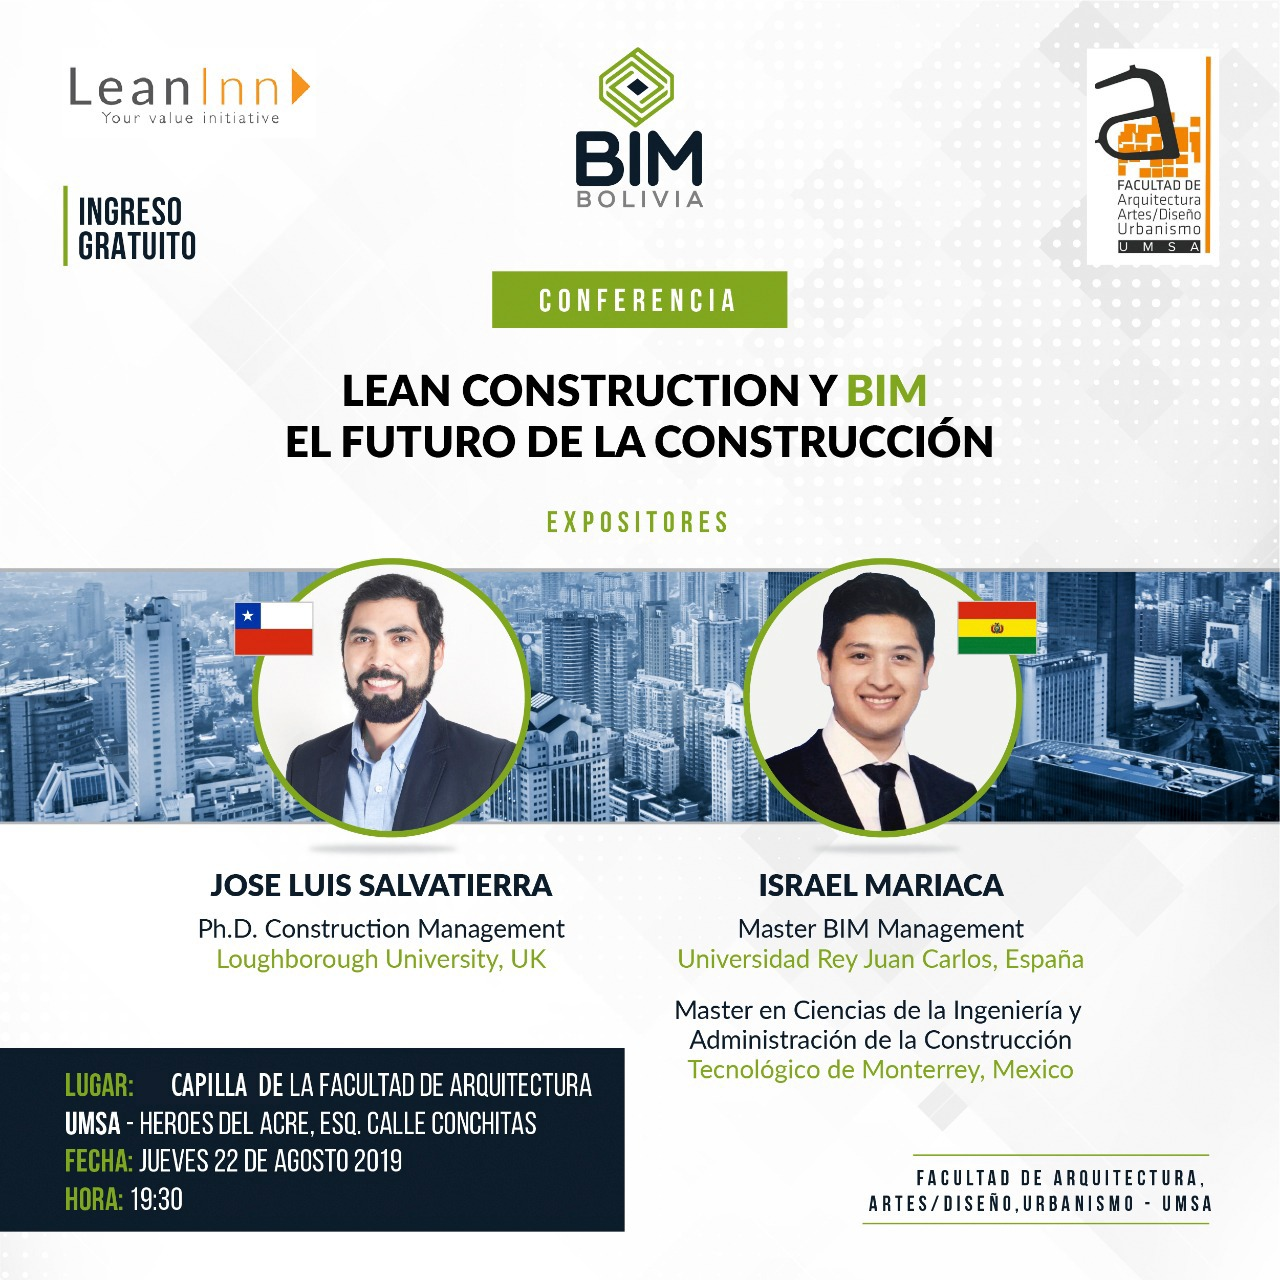 CONFERENCIA LEAN CONSTRUCCION Y BIM